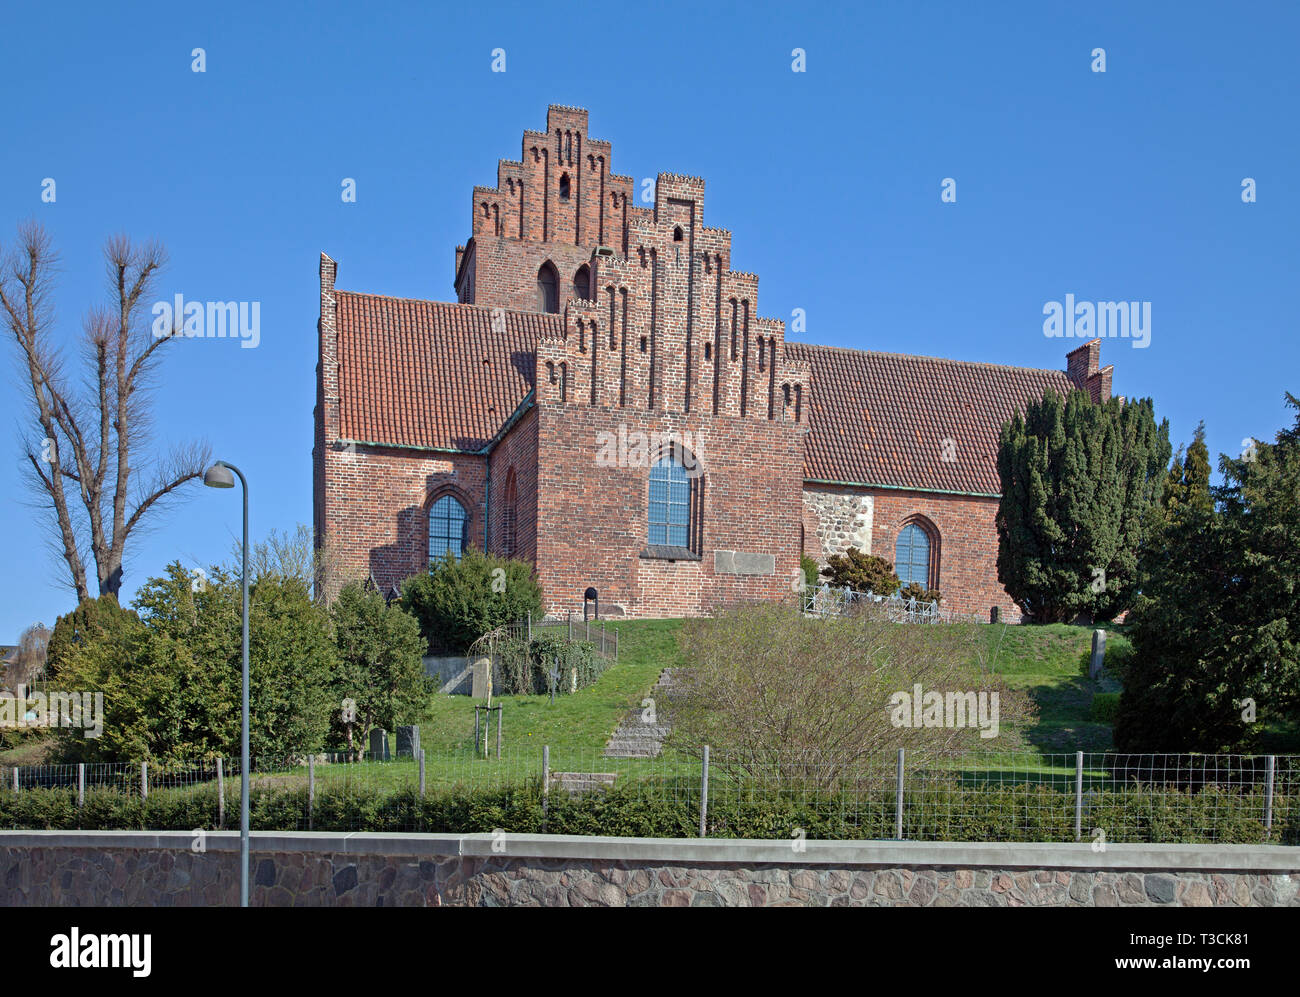 Lyngby Church in Romanesque style orig. from mid 12th century. Lengthened in Late Gothic era.standing high on hill seen from Lyngby main street. - Stock Image